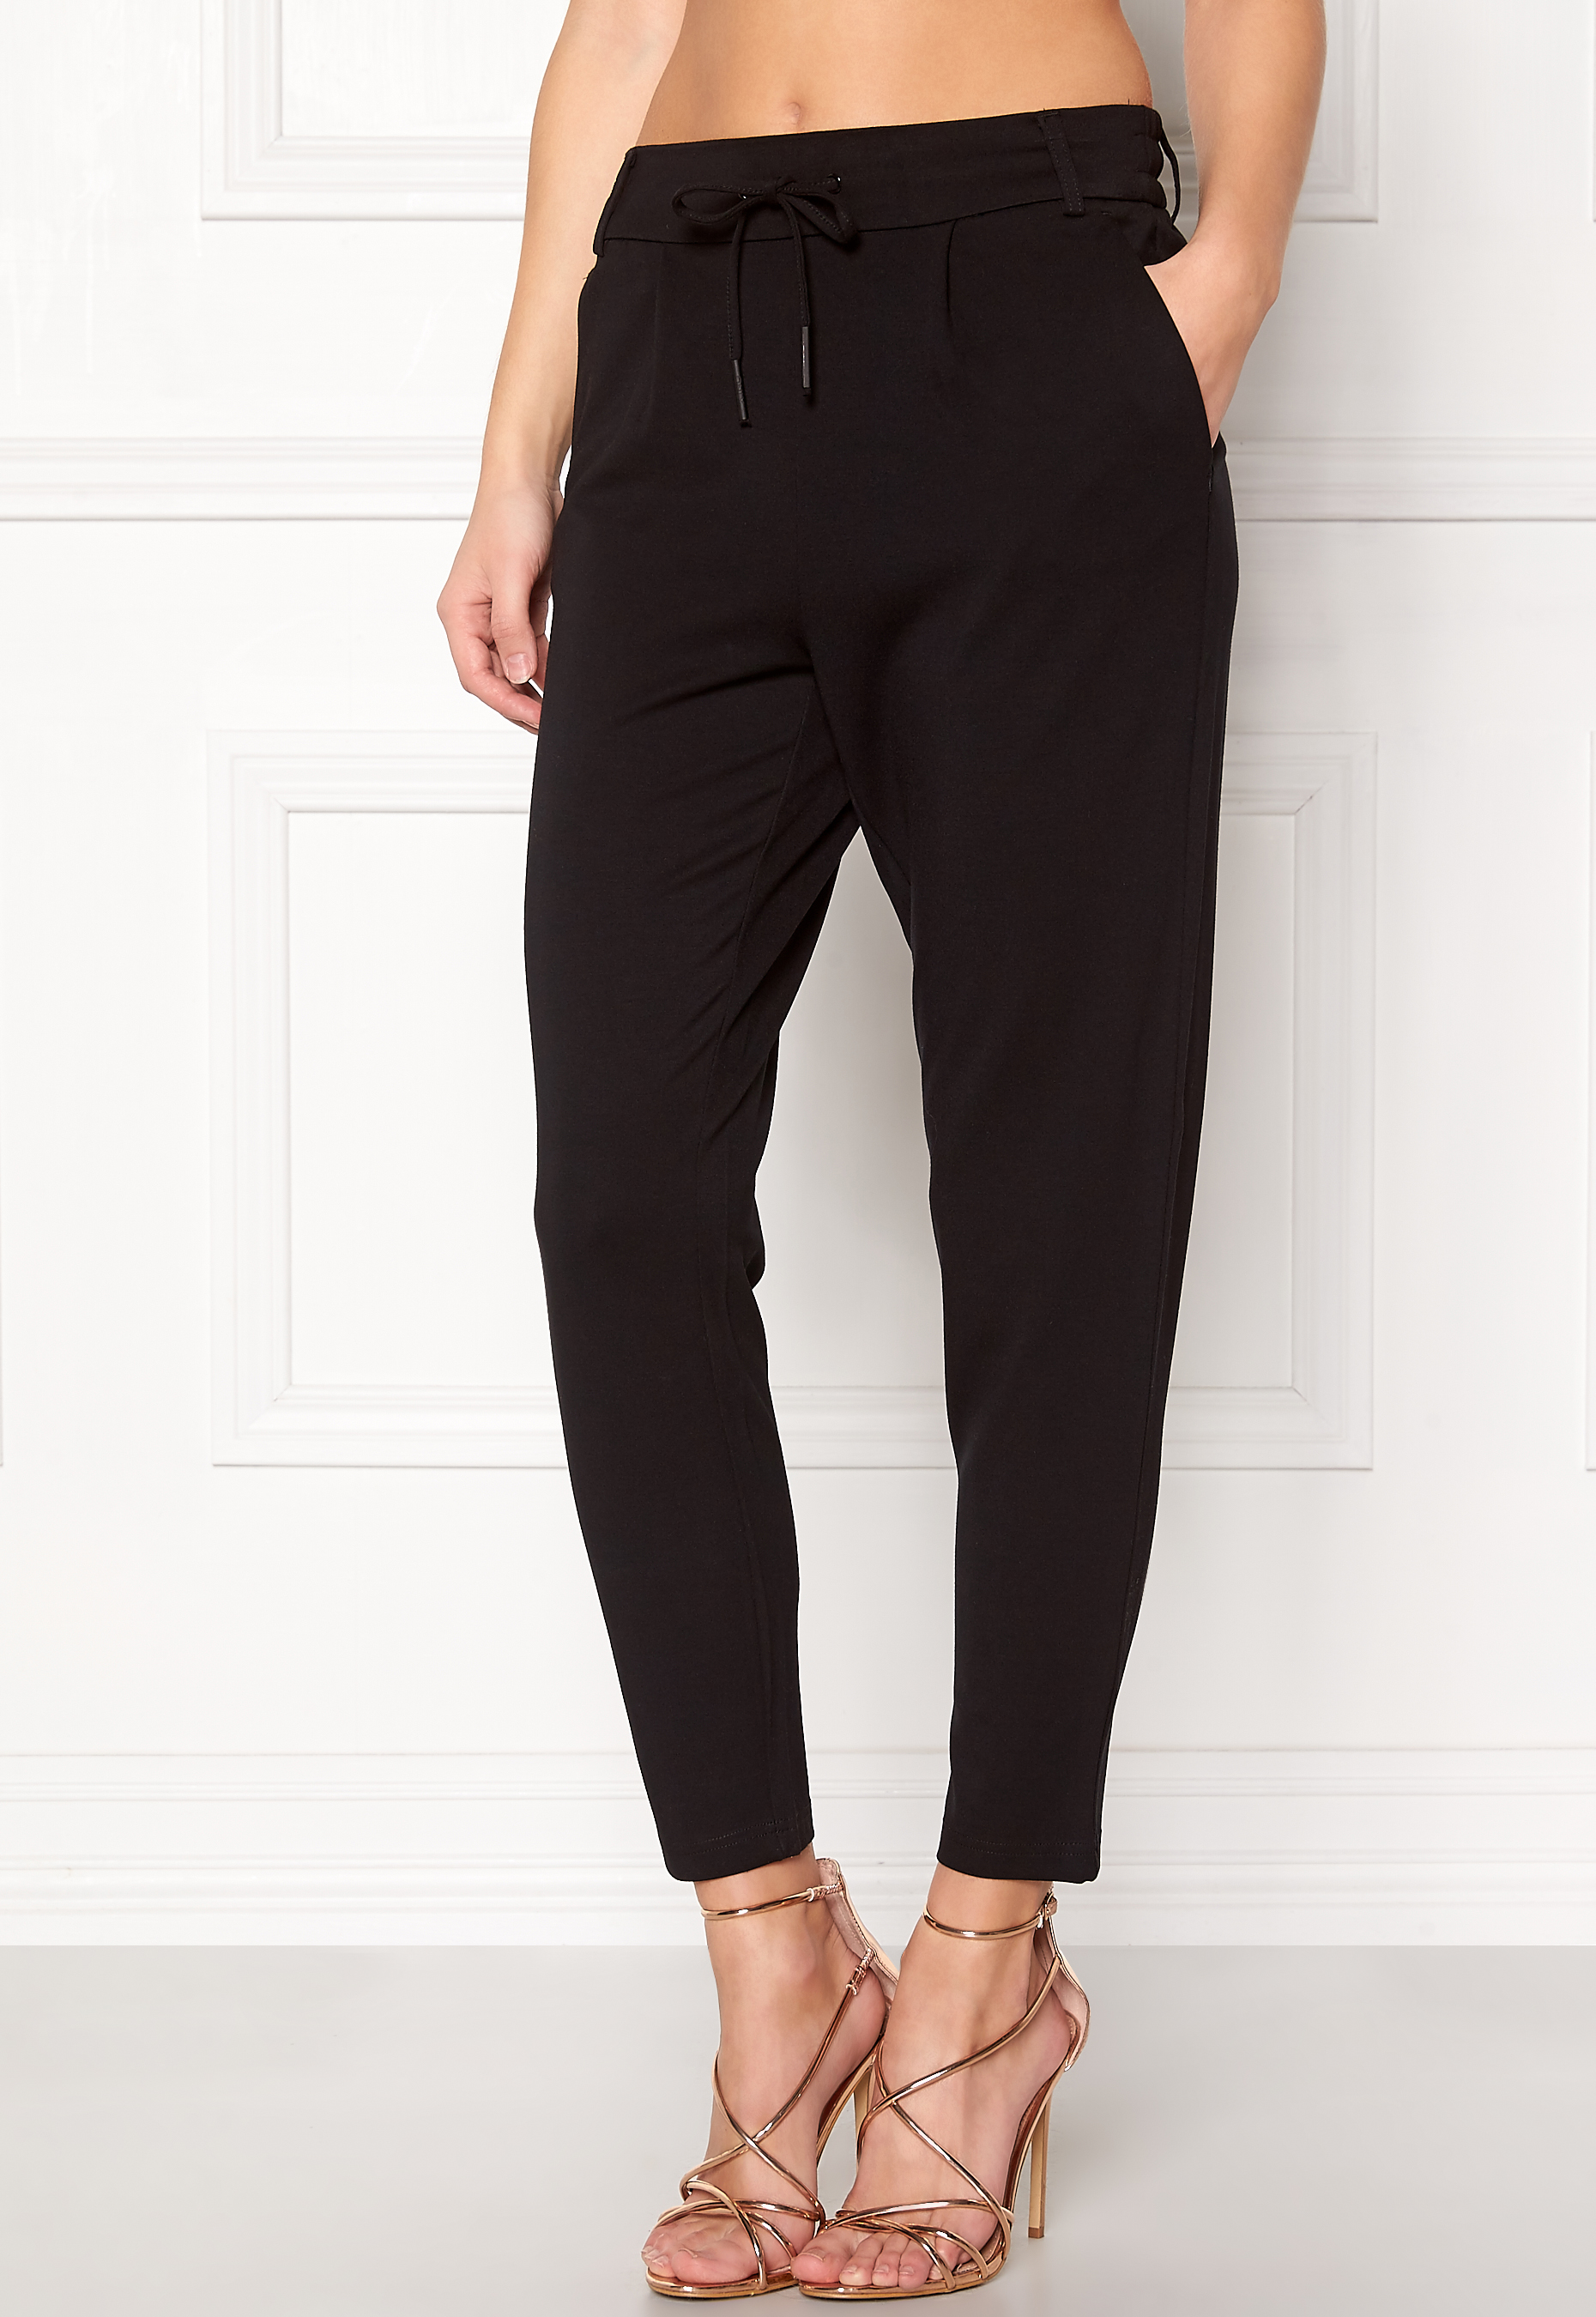 ONLY Poptrash Easy Pants Black - Bubbleroom 5ac3d4bfd0a3a